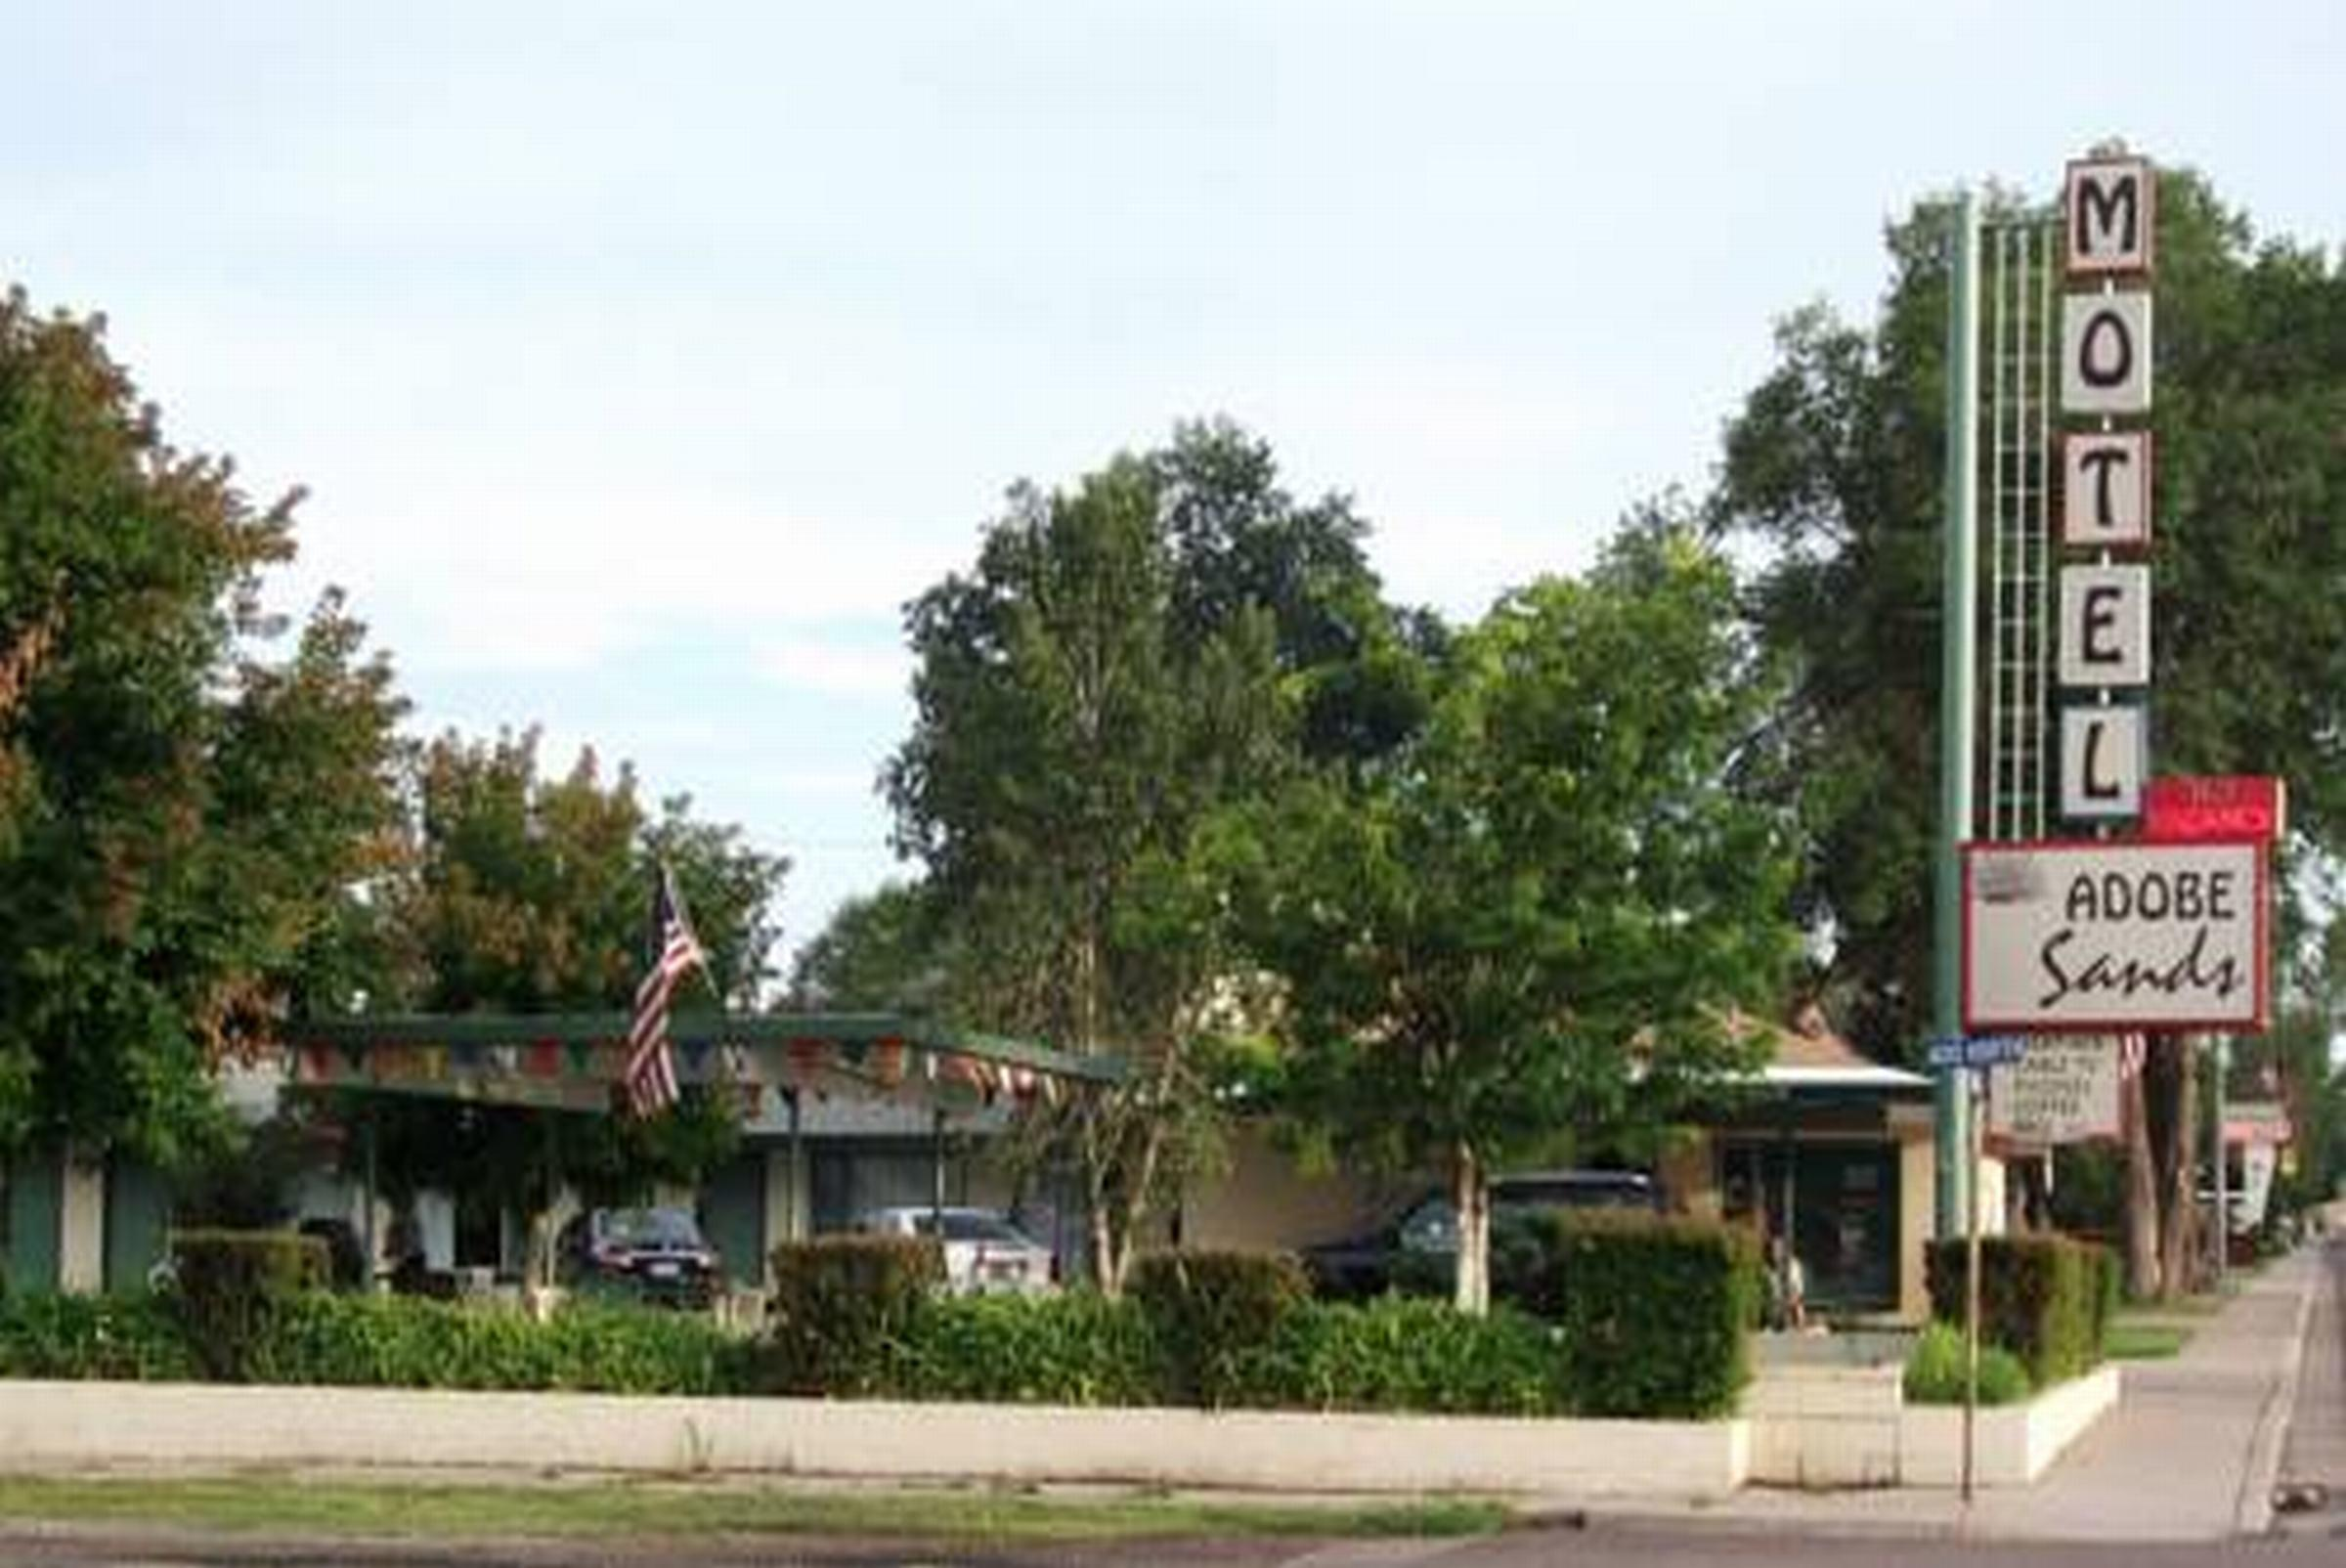 Adobe Sands Motel, Garfield